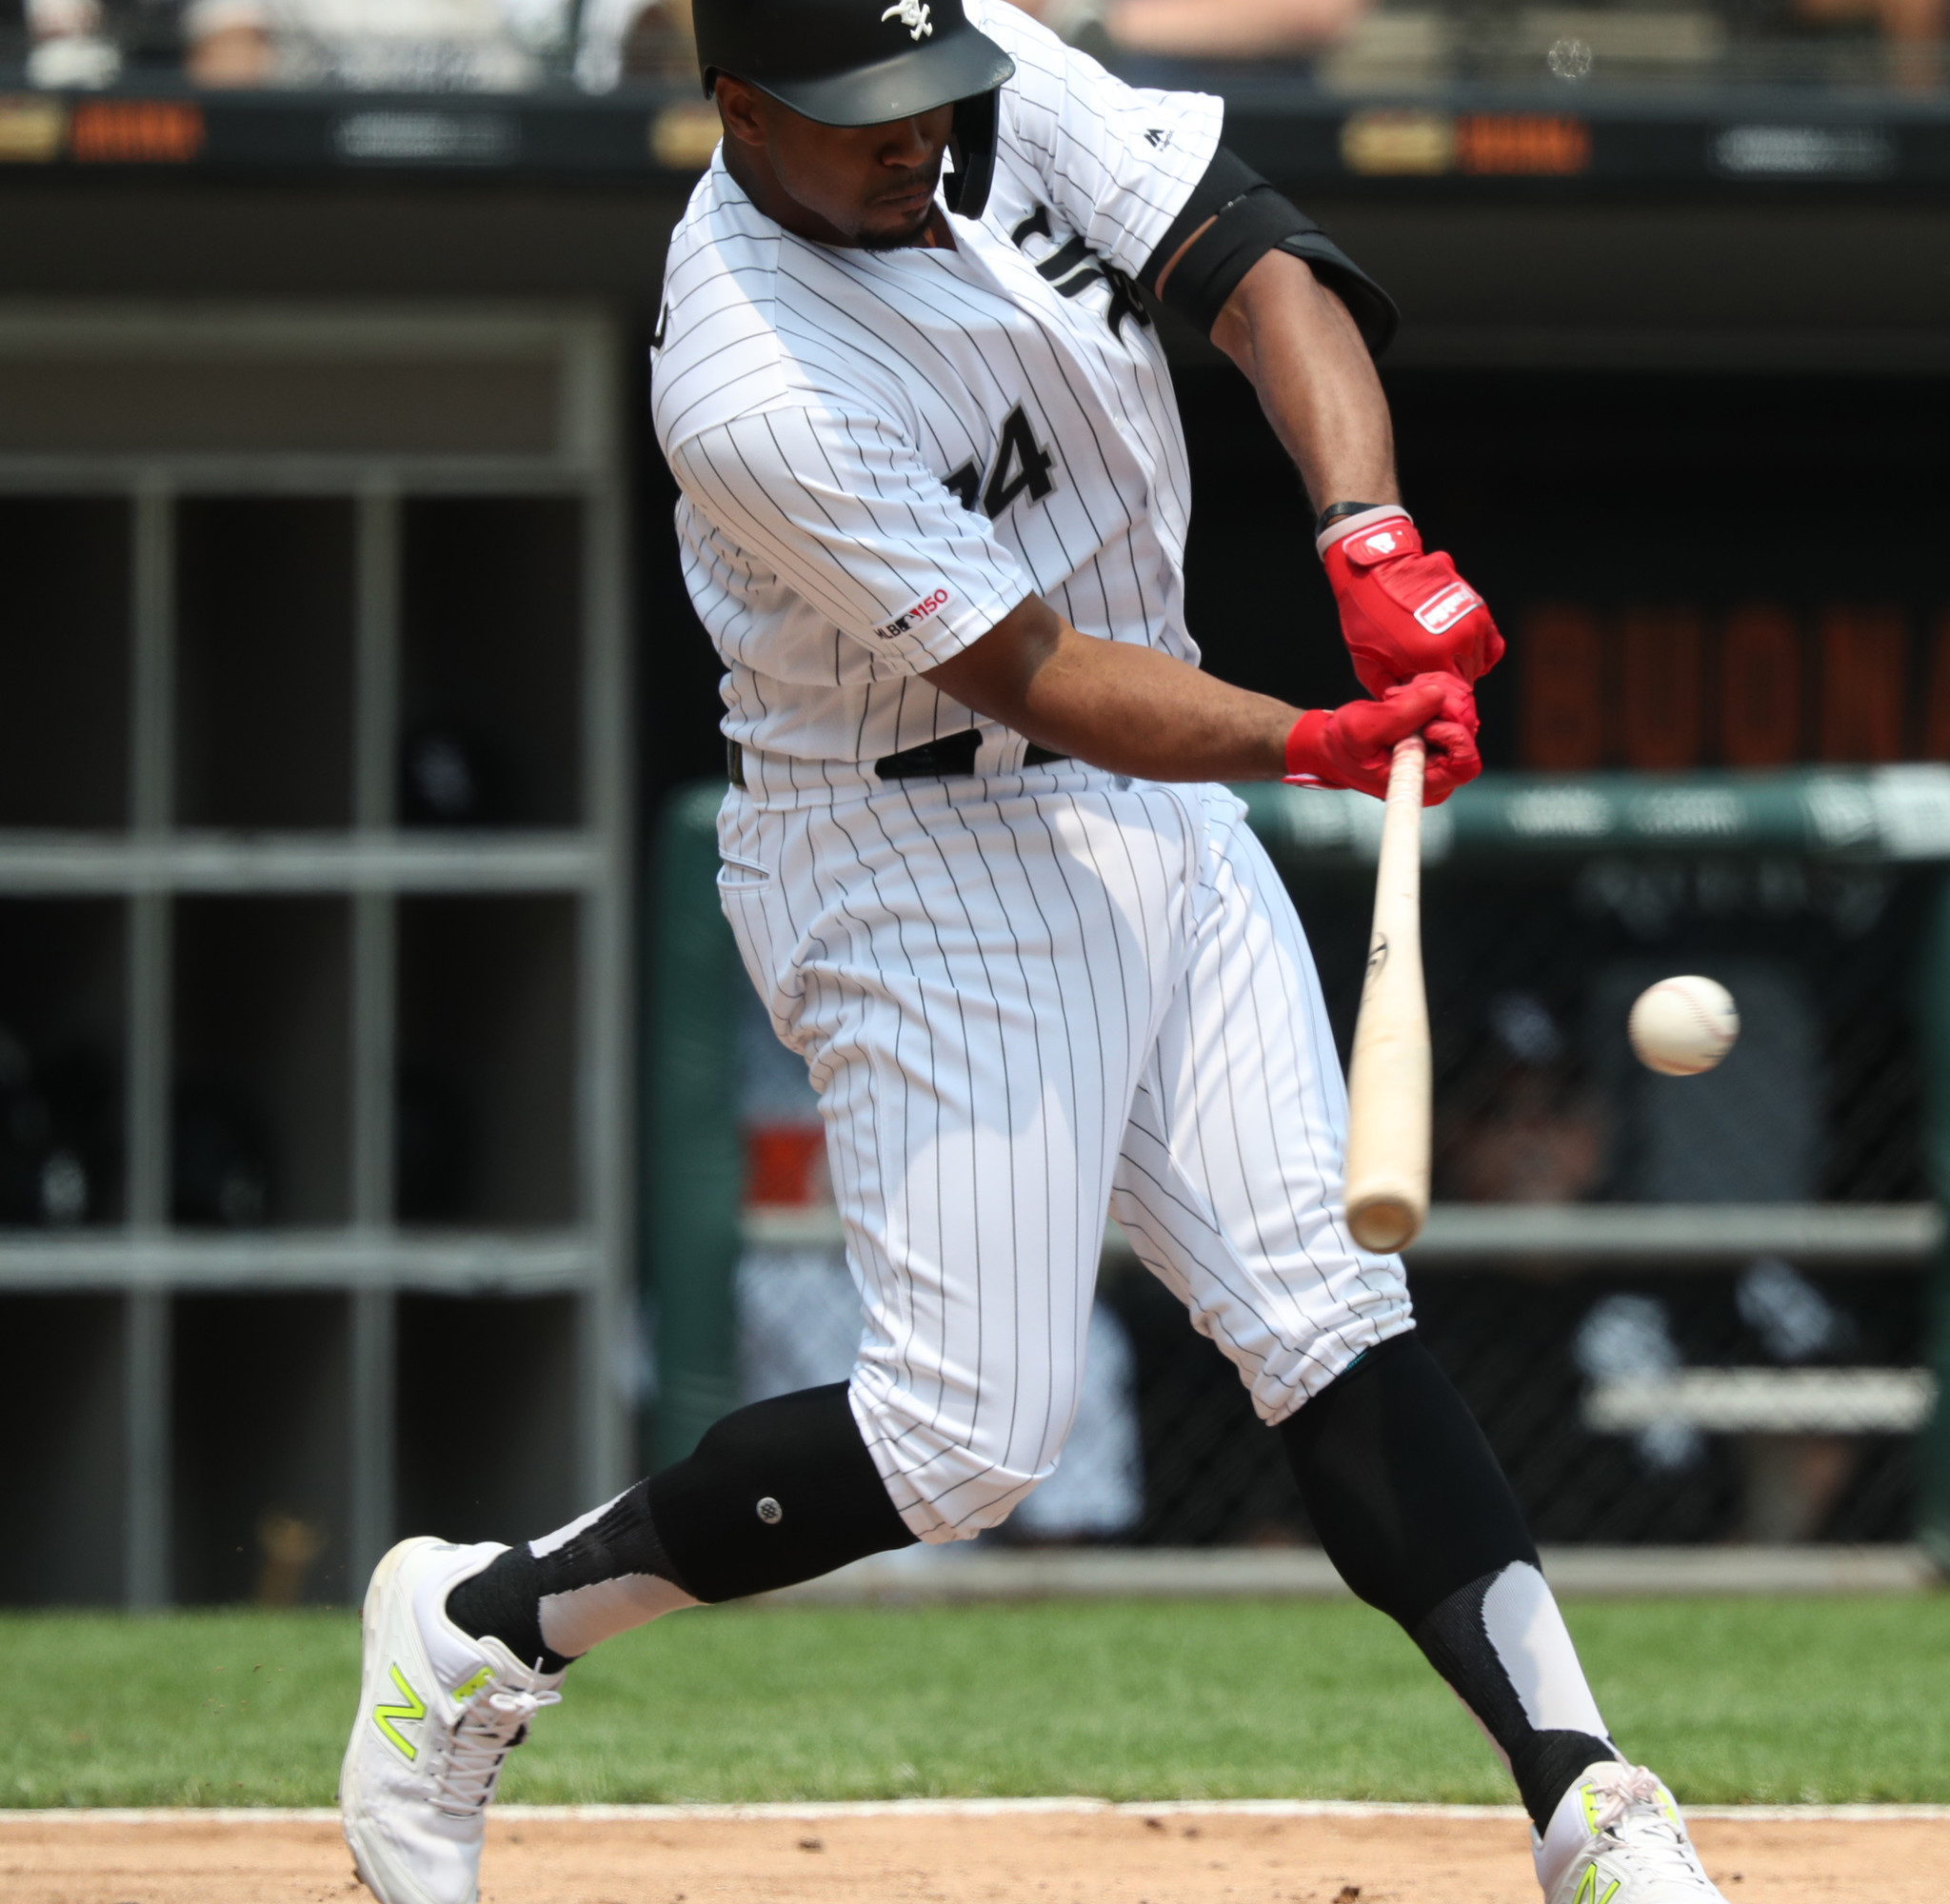 6 things to look for in the City Series, including Eloy Jimenez's Wrigley Field debut and Lucas Giolito vs. Jon Lester